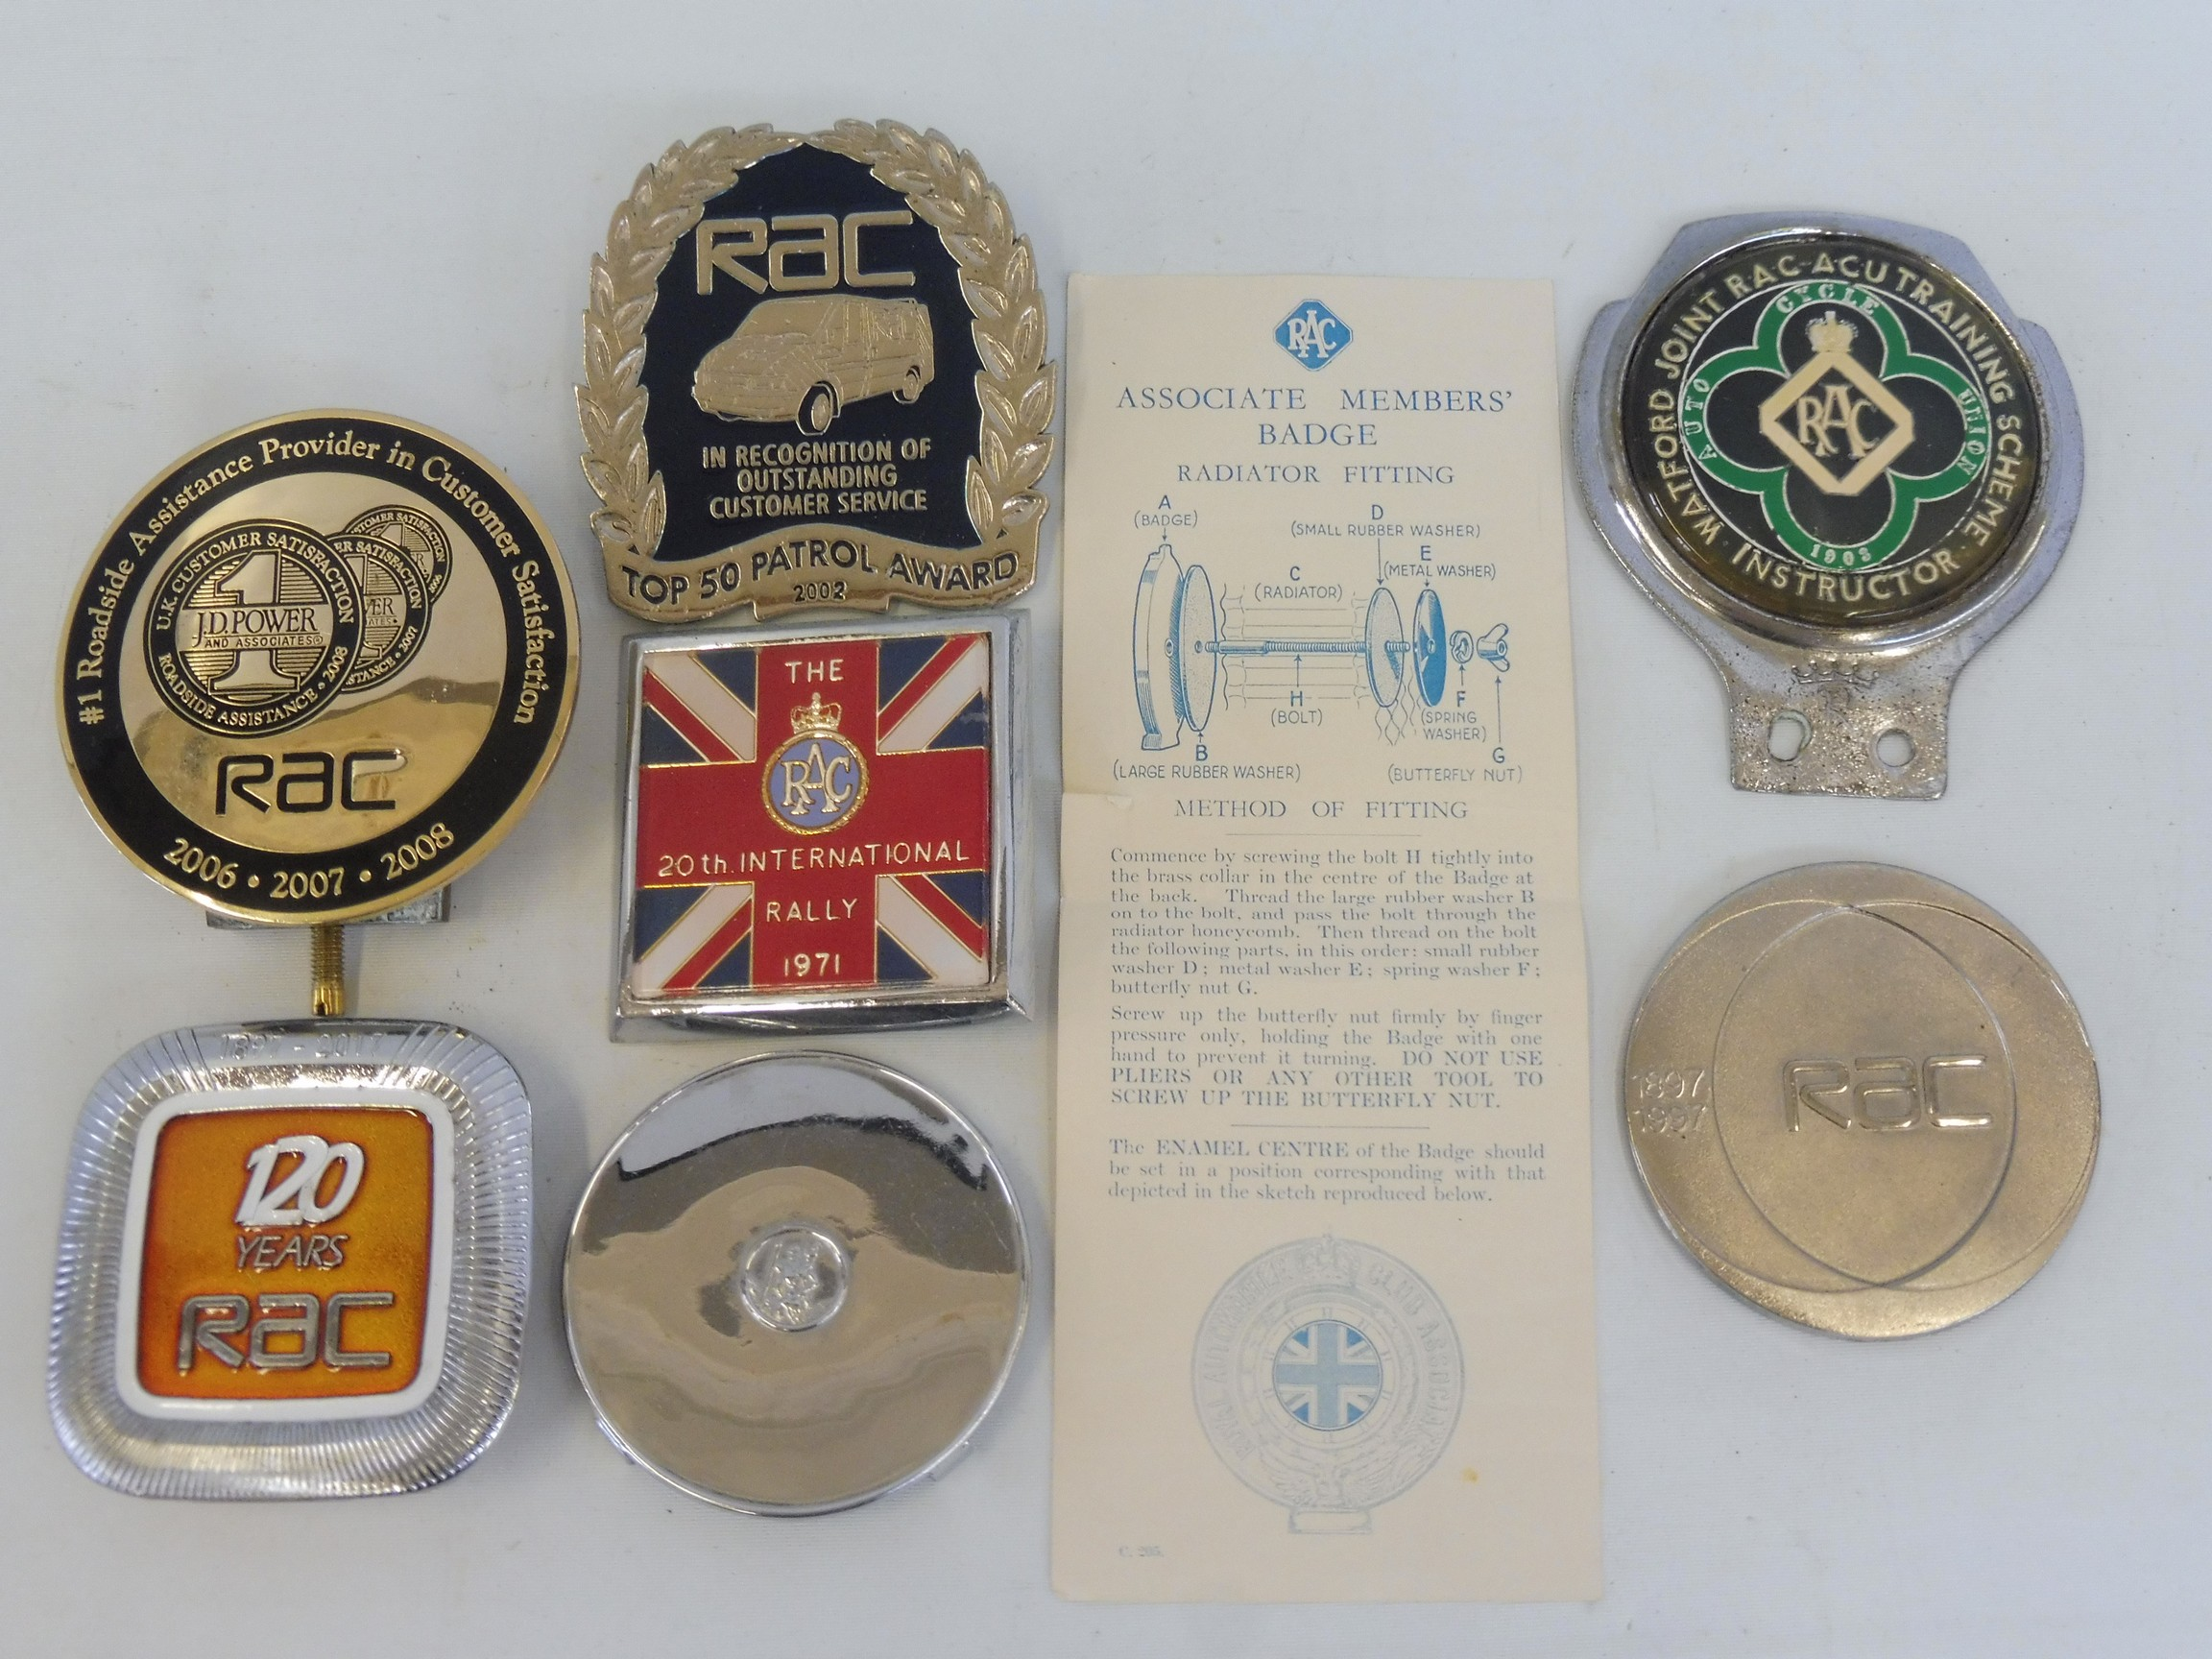 A Royal Automobile Club prototype full members badge - a finished version of lot 99.